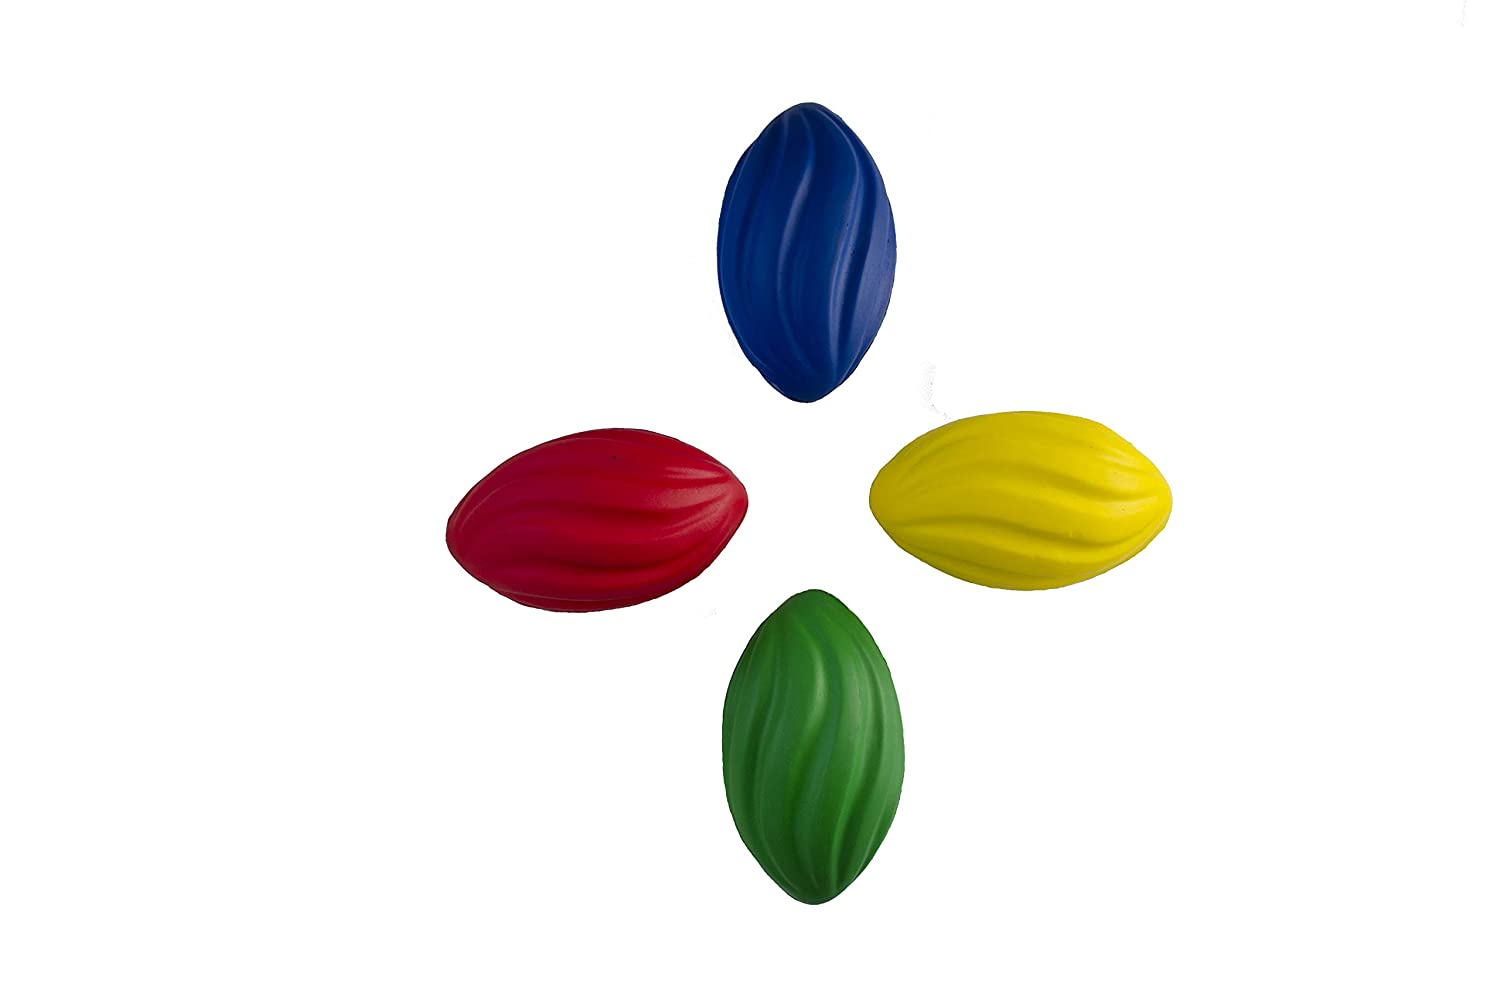 Blue Green. Red Yellow Foam Football is a Great Pool Football LMC Products 7 Spiral Mini Football Kids Football Comes in 4 Colors